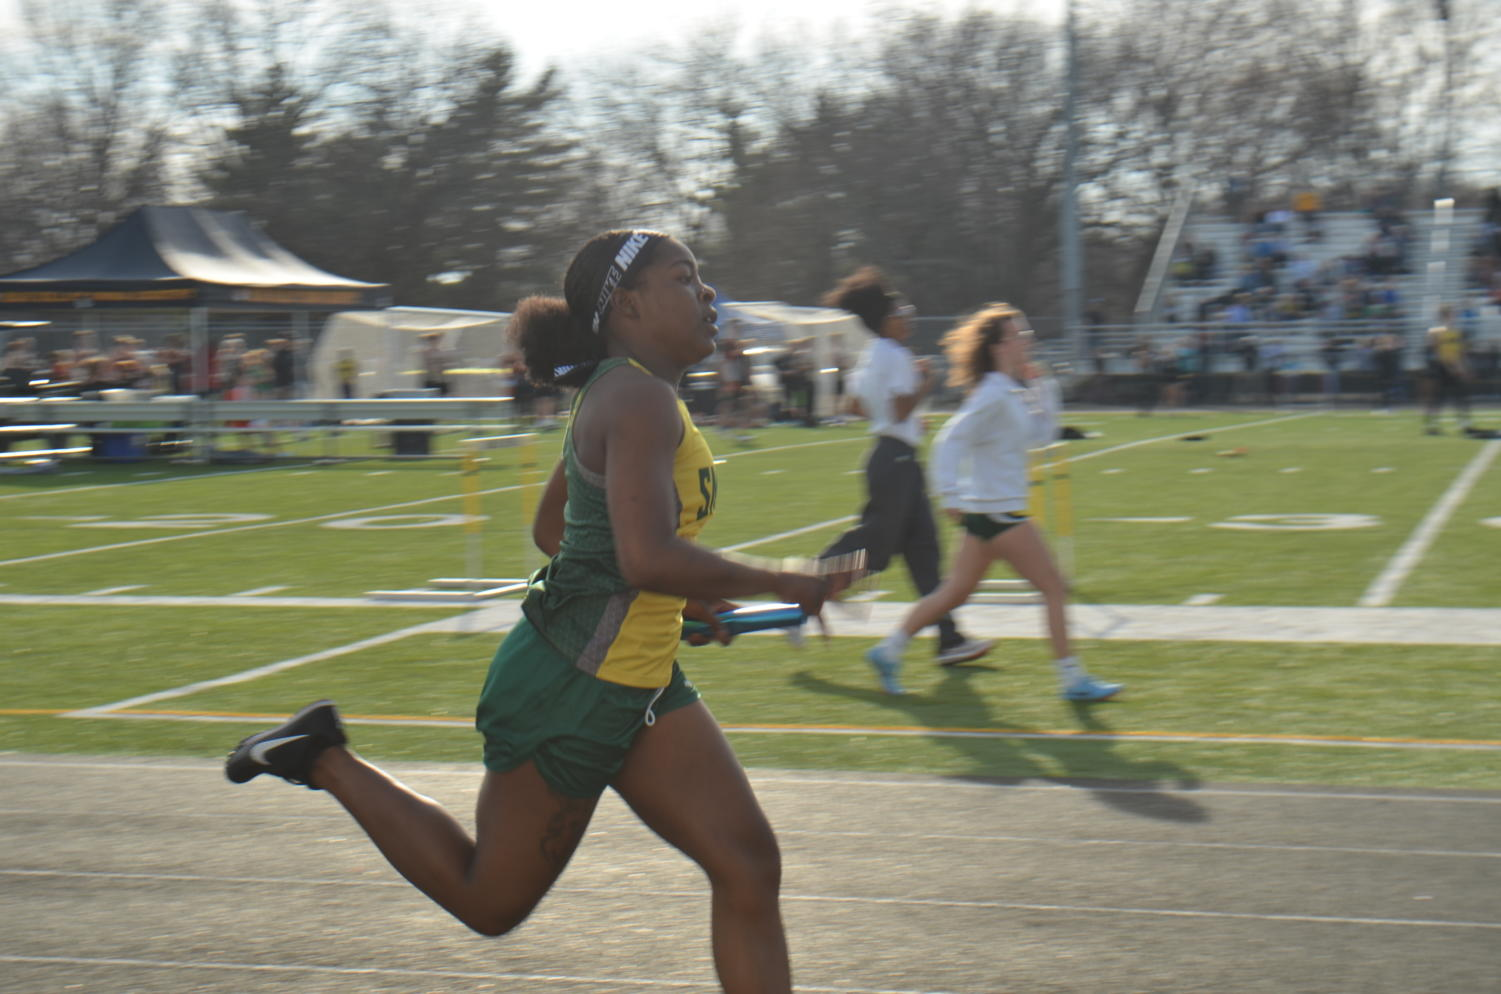 Junior Yasmeen Byers runs relays at the first track meet this season. She finishes in second place.